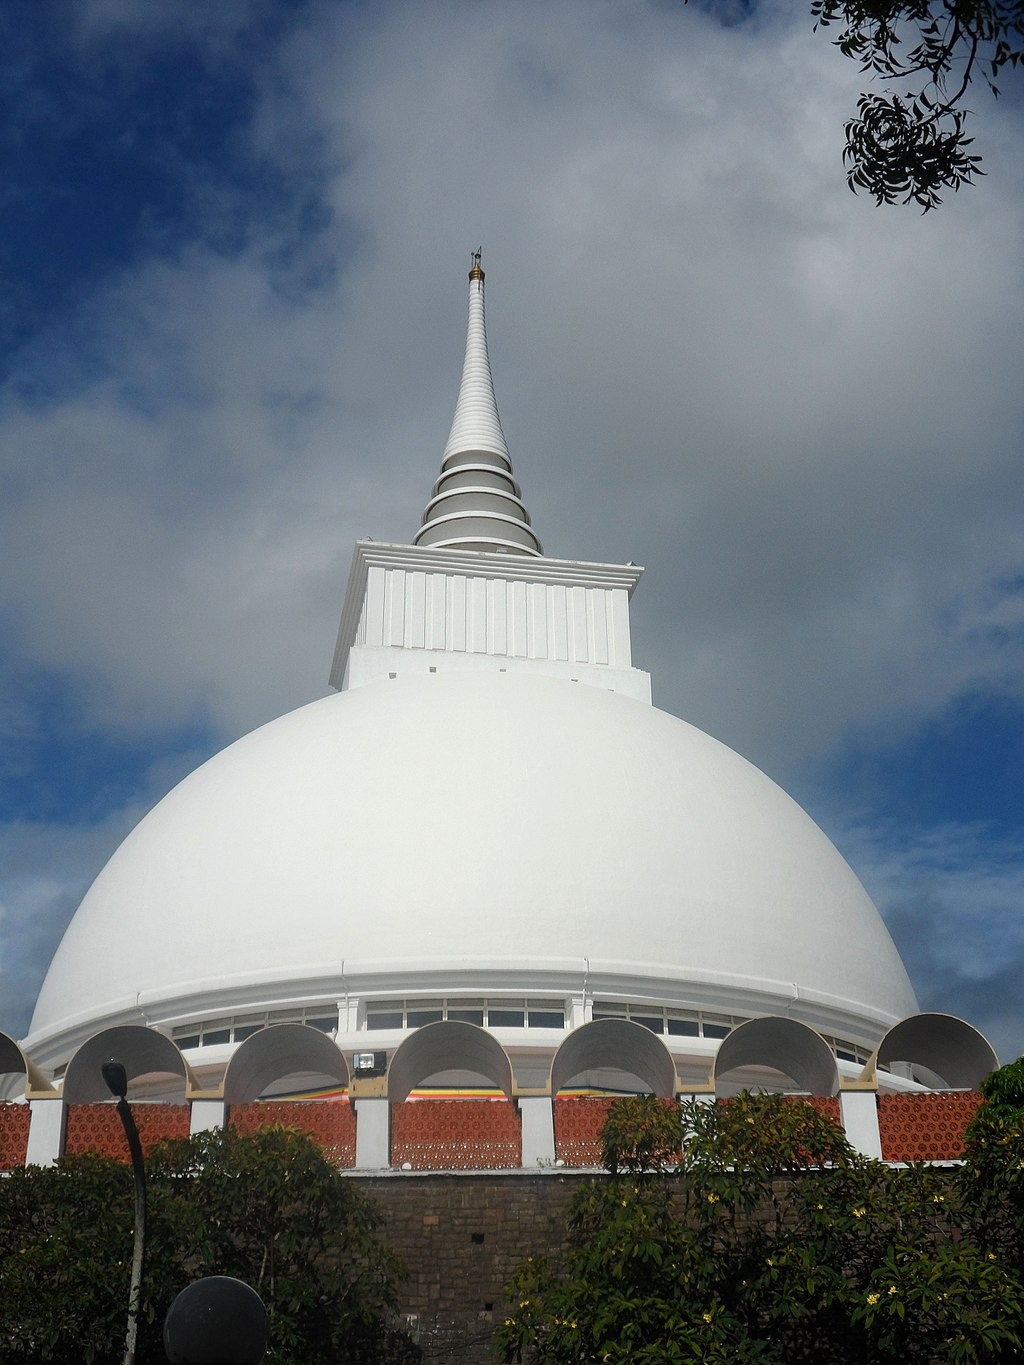 "Kalutara Bodhiya | Image Credit: Yoshan Bisanka, <a href=""https://commons.wikimedia.org/wiki/File:Kalutara_Temple_-_panoramio.jpg"">Kalutara Temple - panoramio</a>, <a href=""https://creativecommons.org/licenses/by/3.0/legalcode"" rel=""license"">CC BY 3.0</a>"